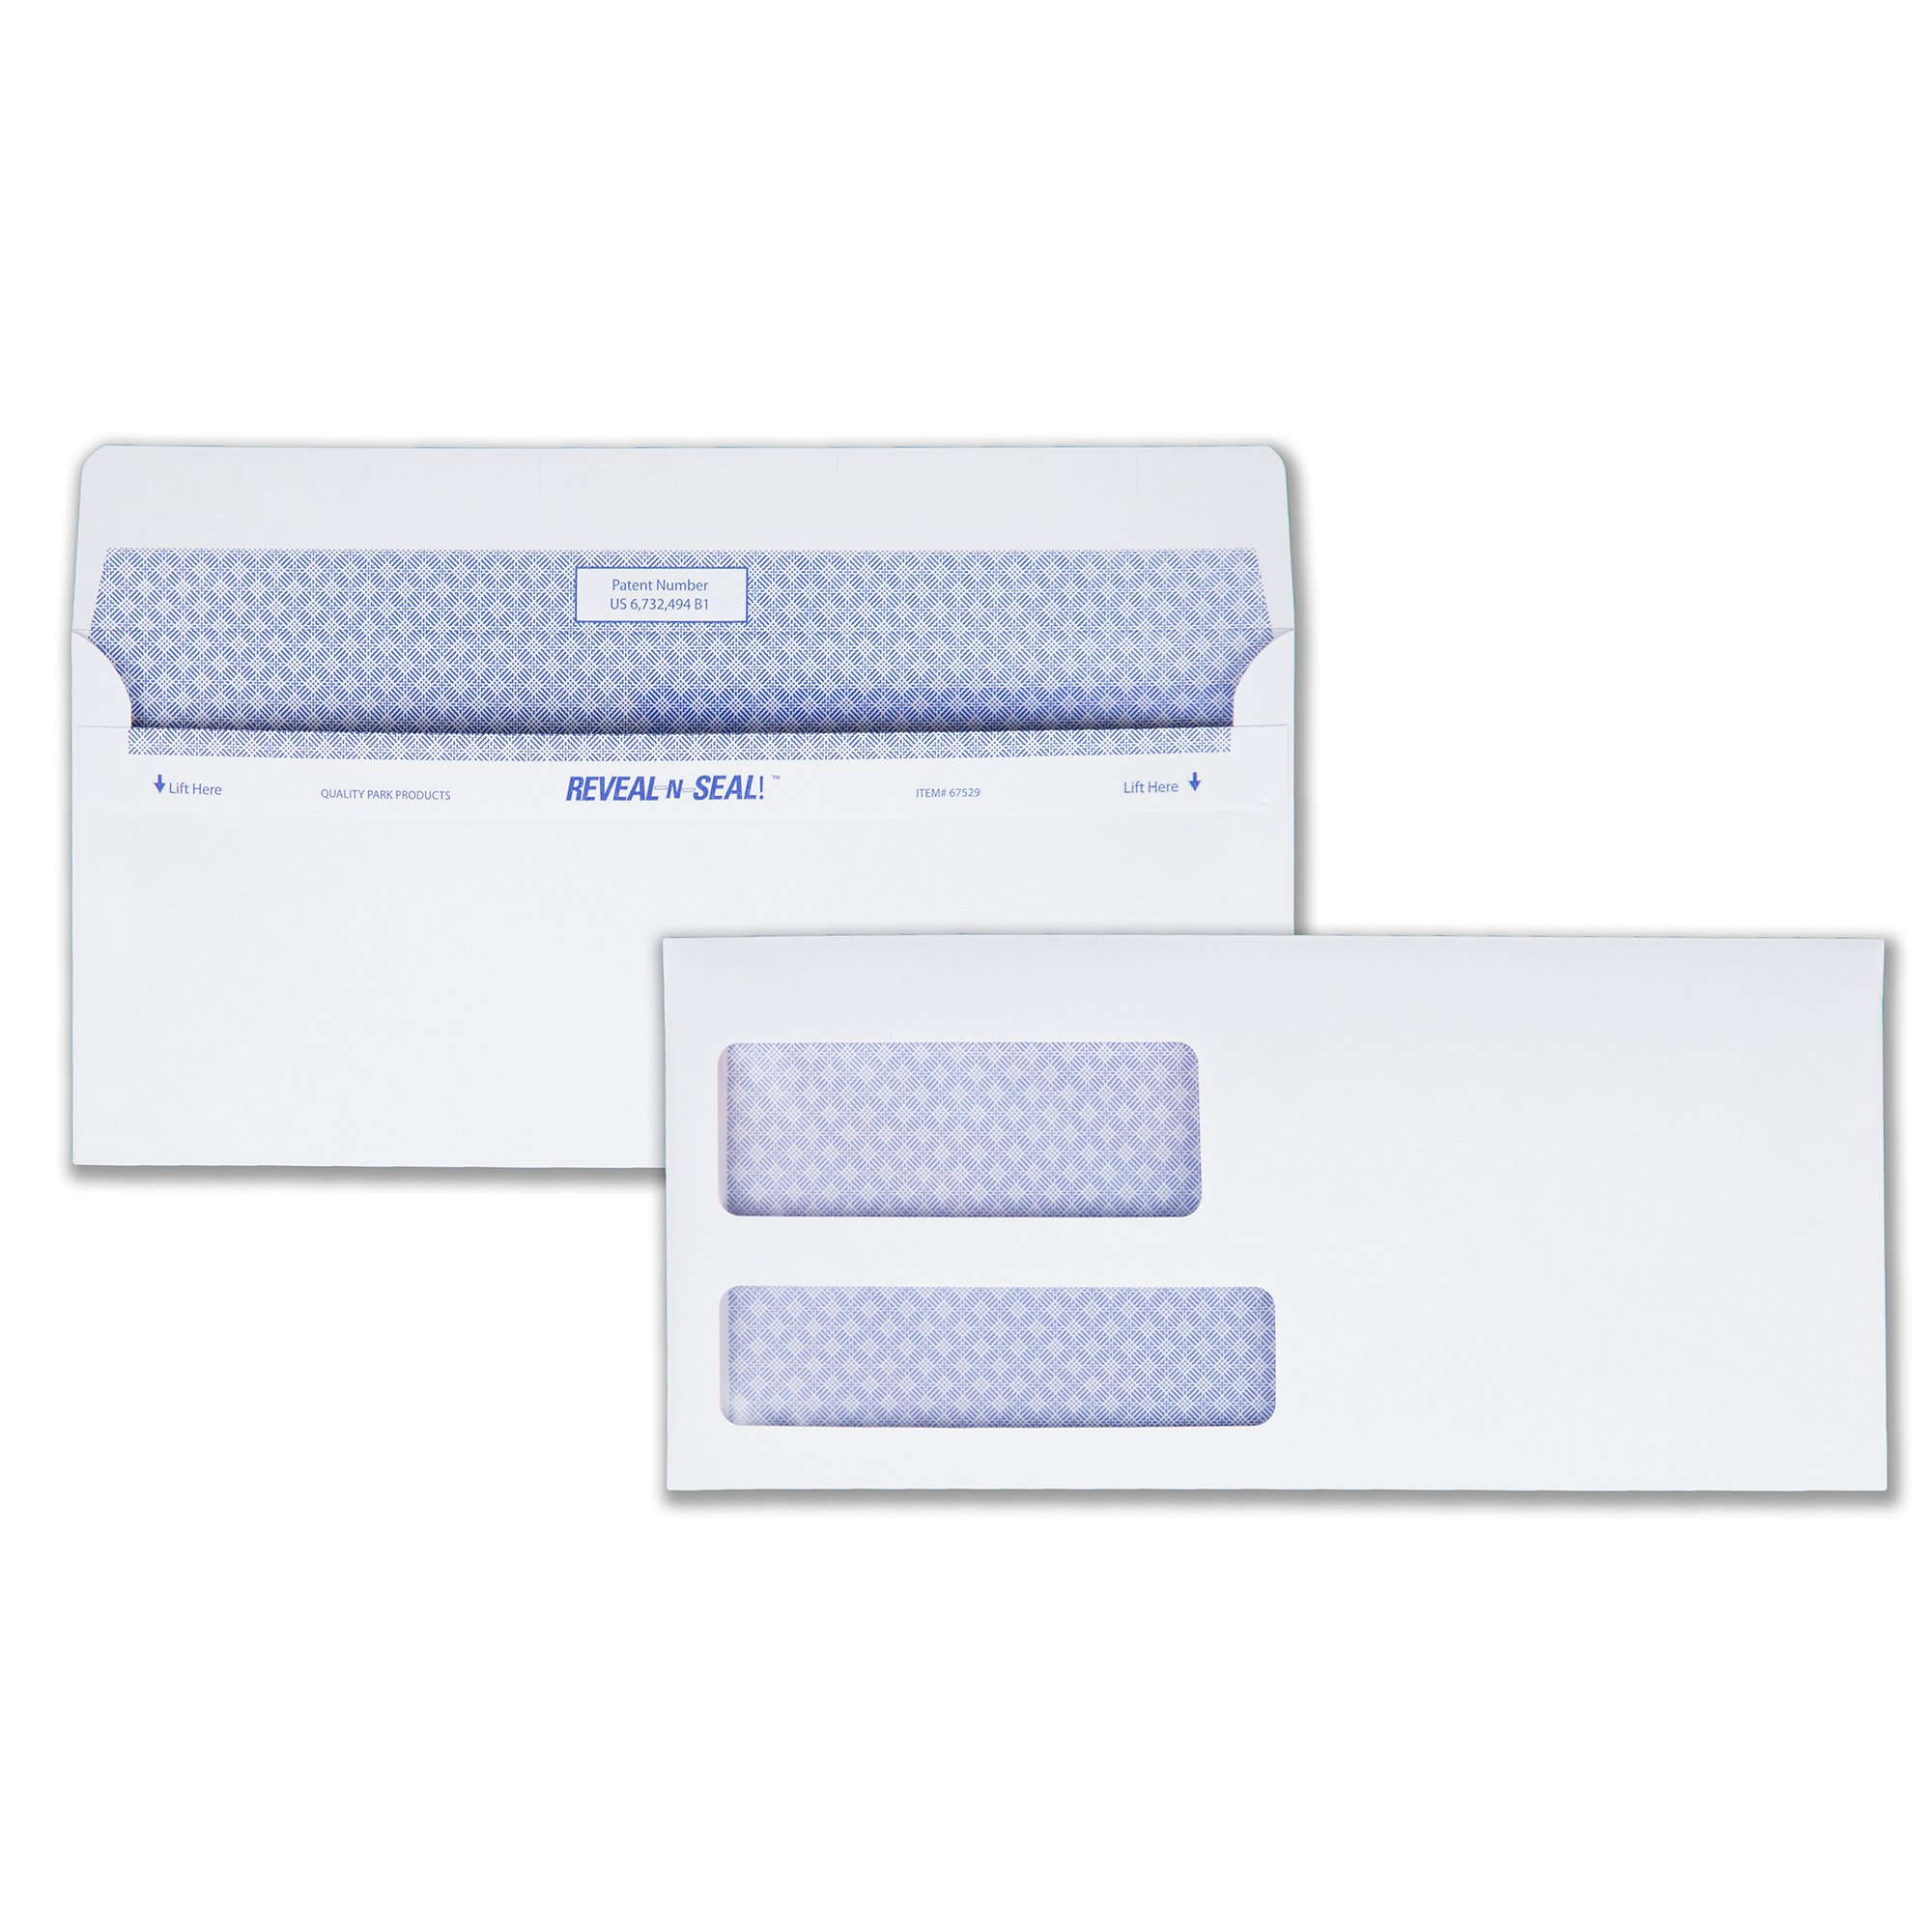 Quality Park #9 Double Window Security Tinted Invoice and Statement Envelope with Reveal-N-Seal Self Seal Closure, 24 lb White Wove, 3-7/8 x 8-7/8. 500 per Box (67529) by Quality Park